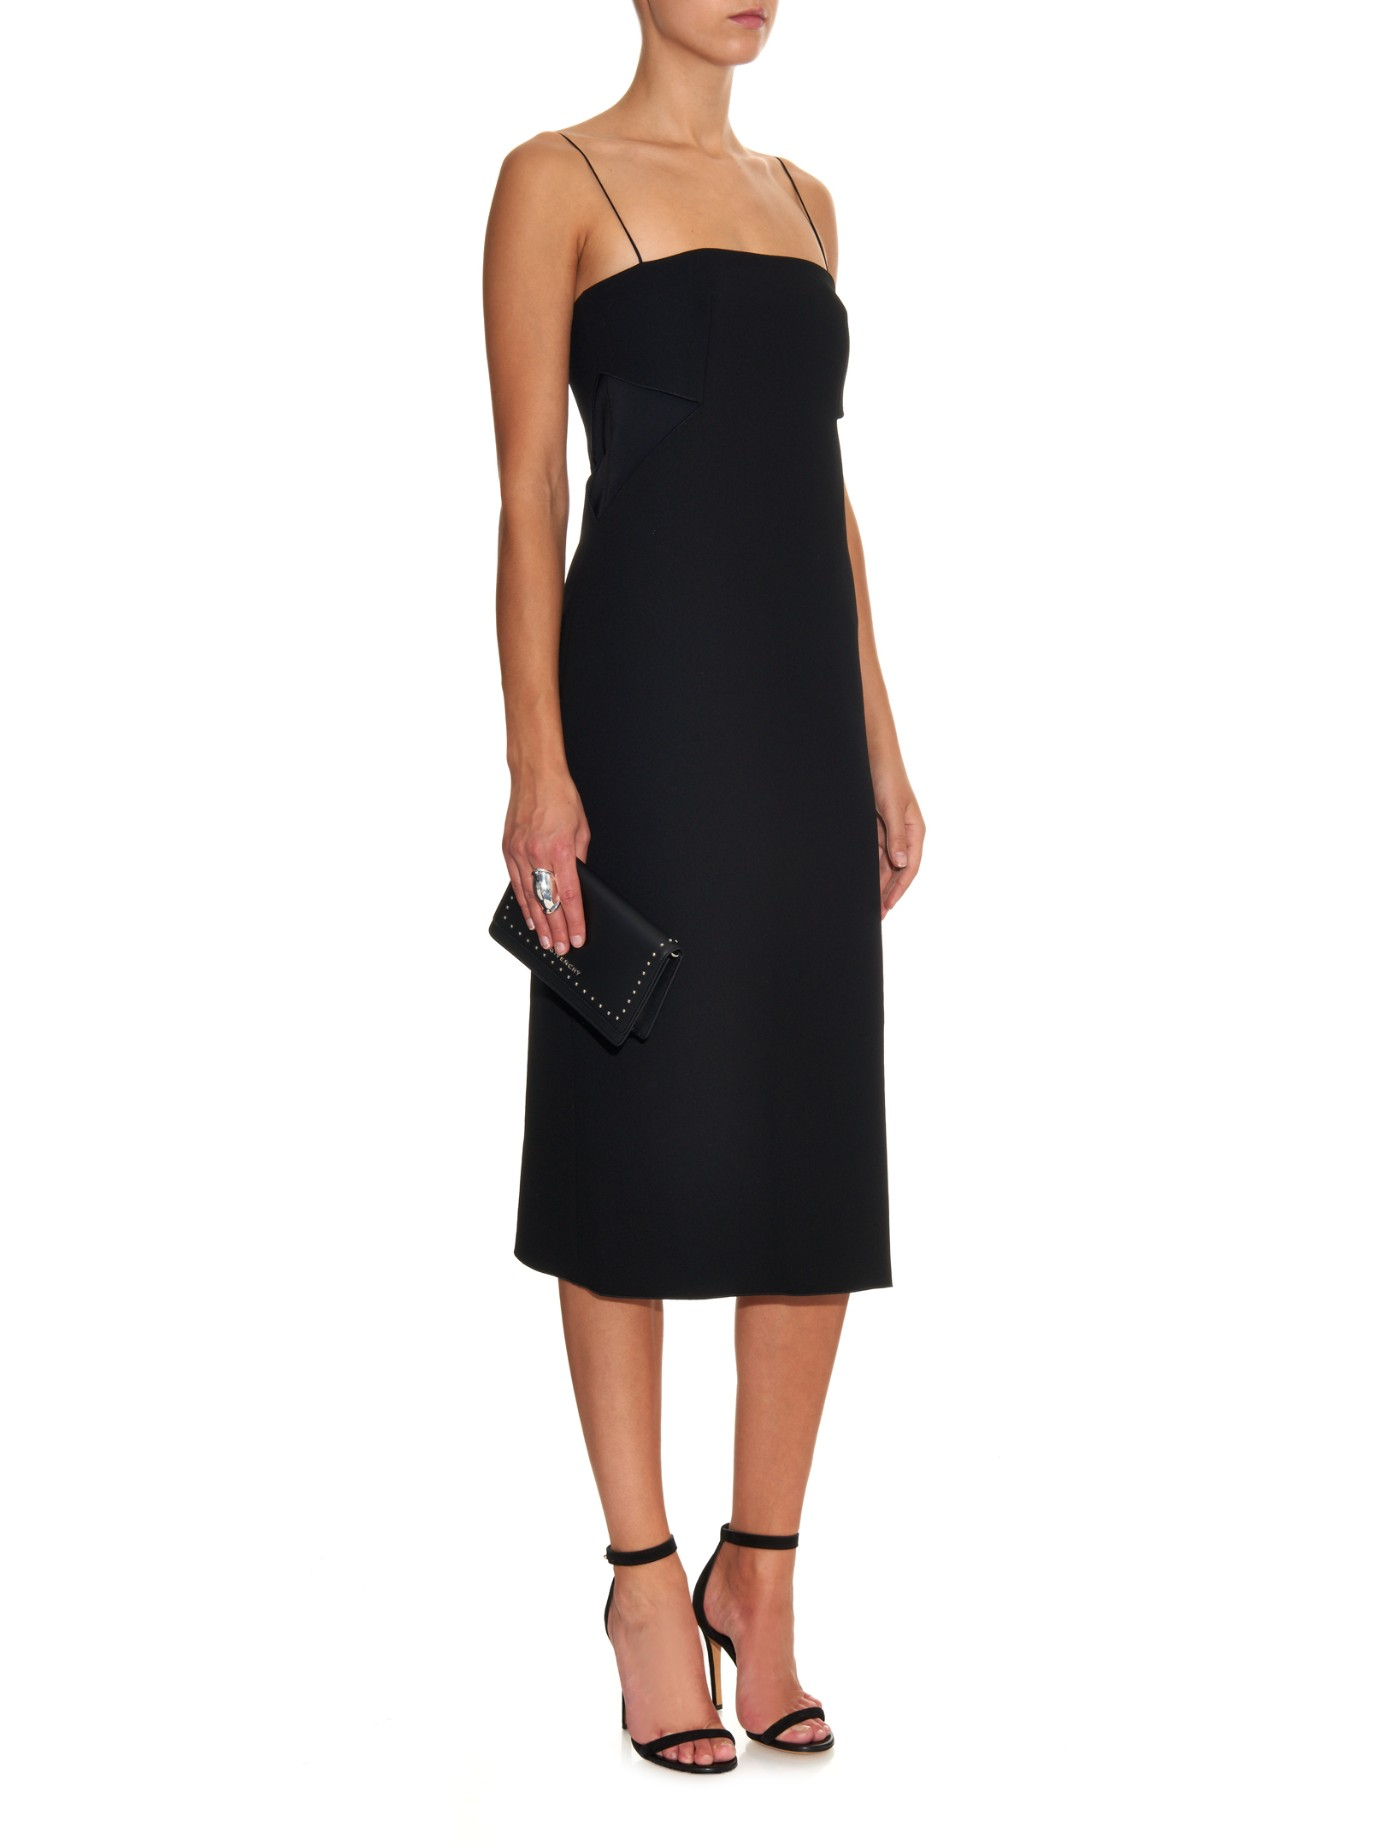 Cutout Crepe Gown - Black Dion Lee xHXKId